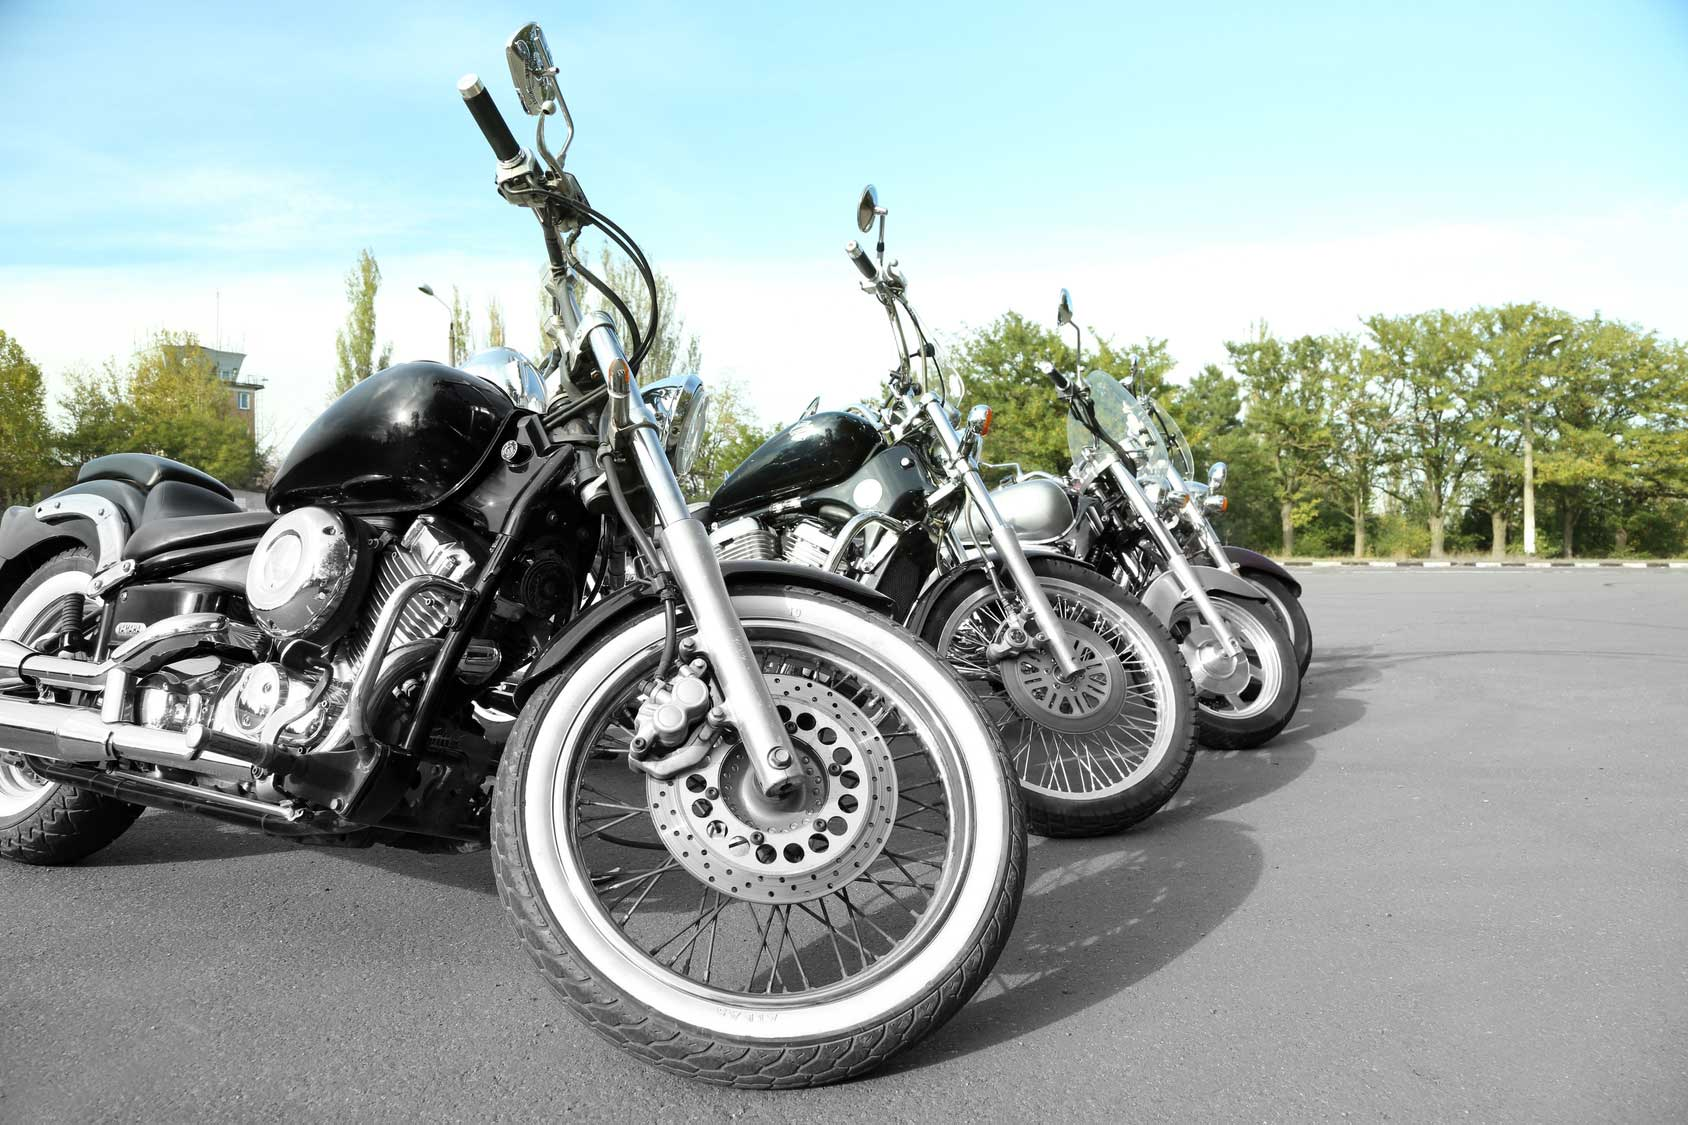 Motorcycle Safety Rules & Motorcycle Insurance Orland Park IL